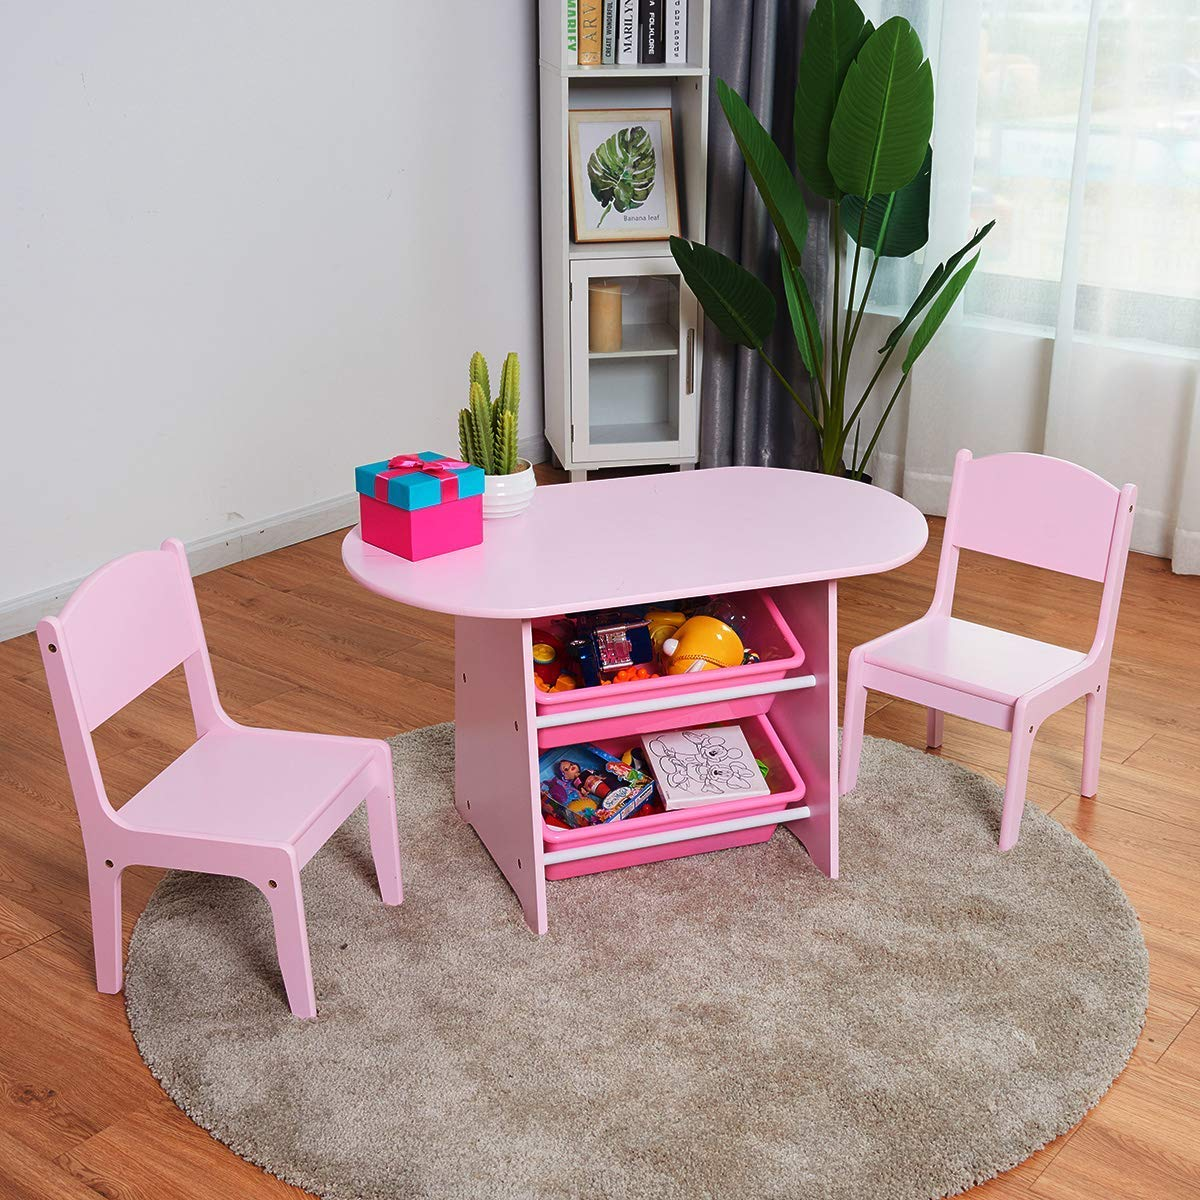 BABY JOY Kids Table and 2 Chair Set with 2 Pink Plastic Storage Bins, Lightweight Oval Round Desk for Dining Room Living Room Indoors & Outdoors Toddler Gift